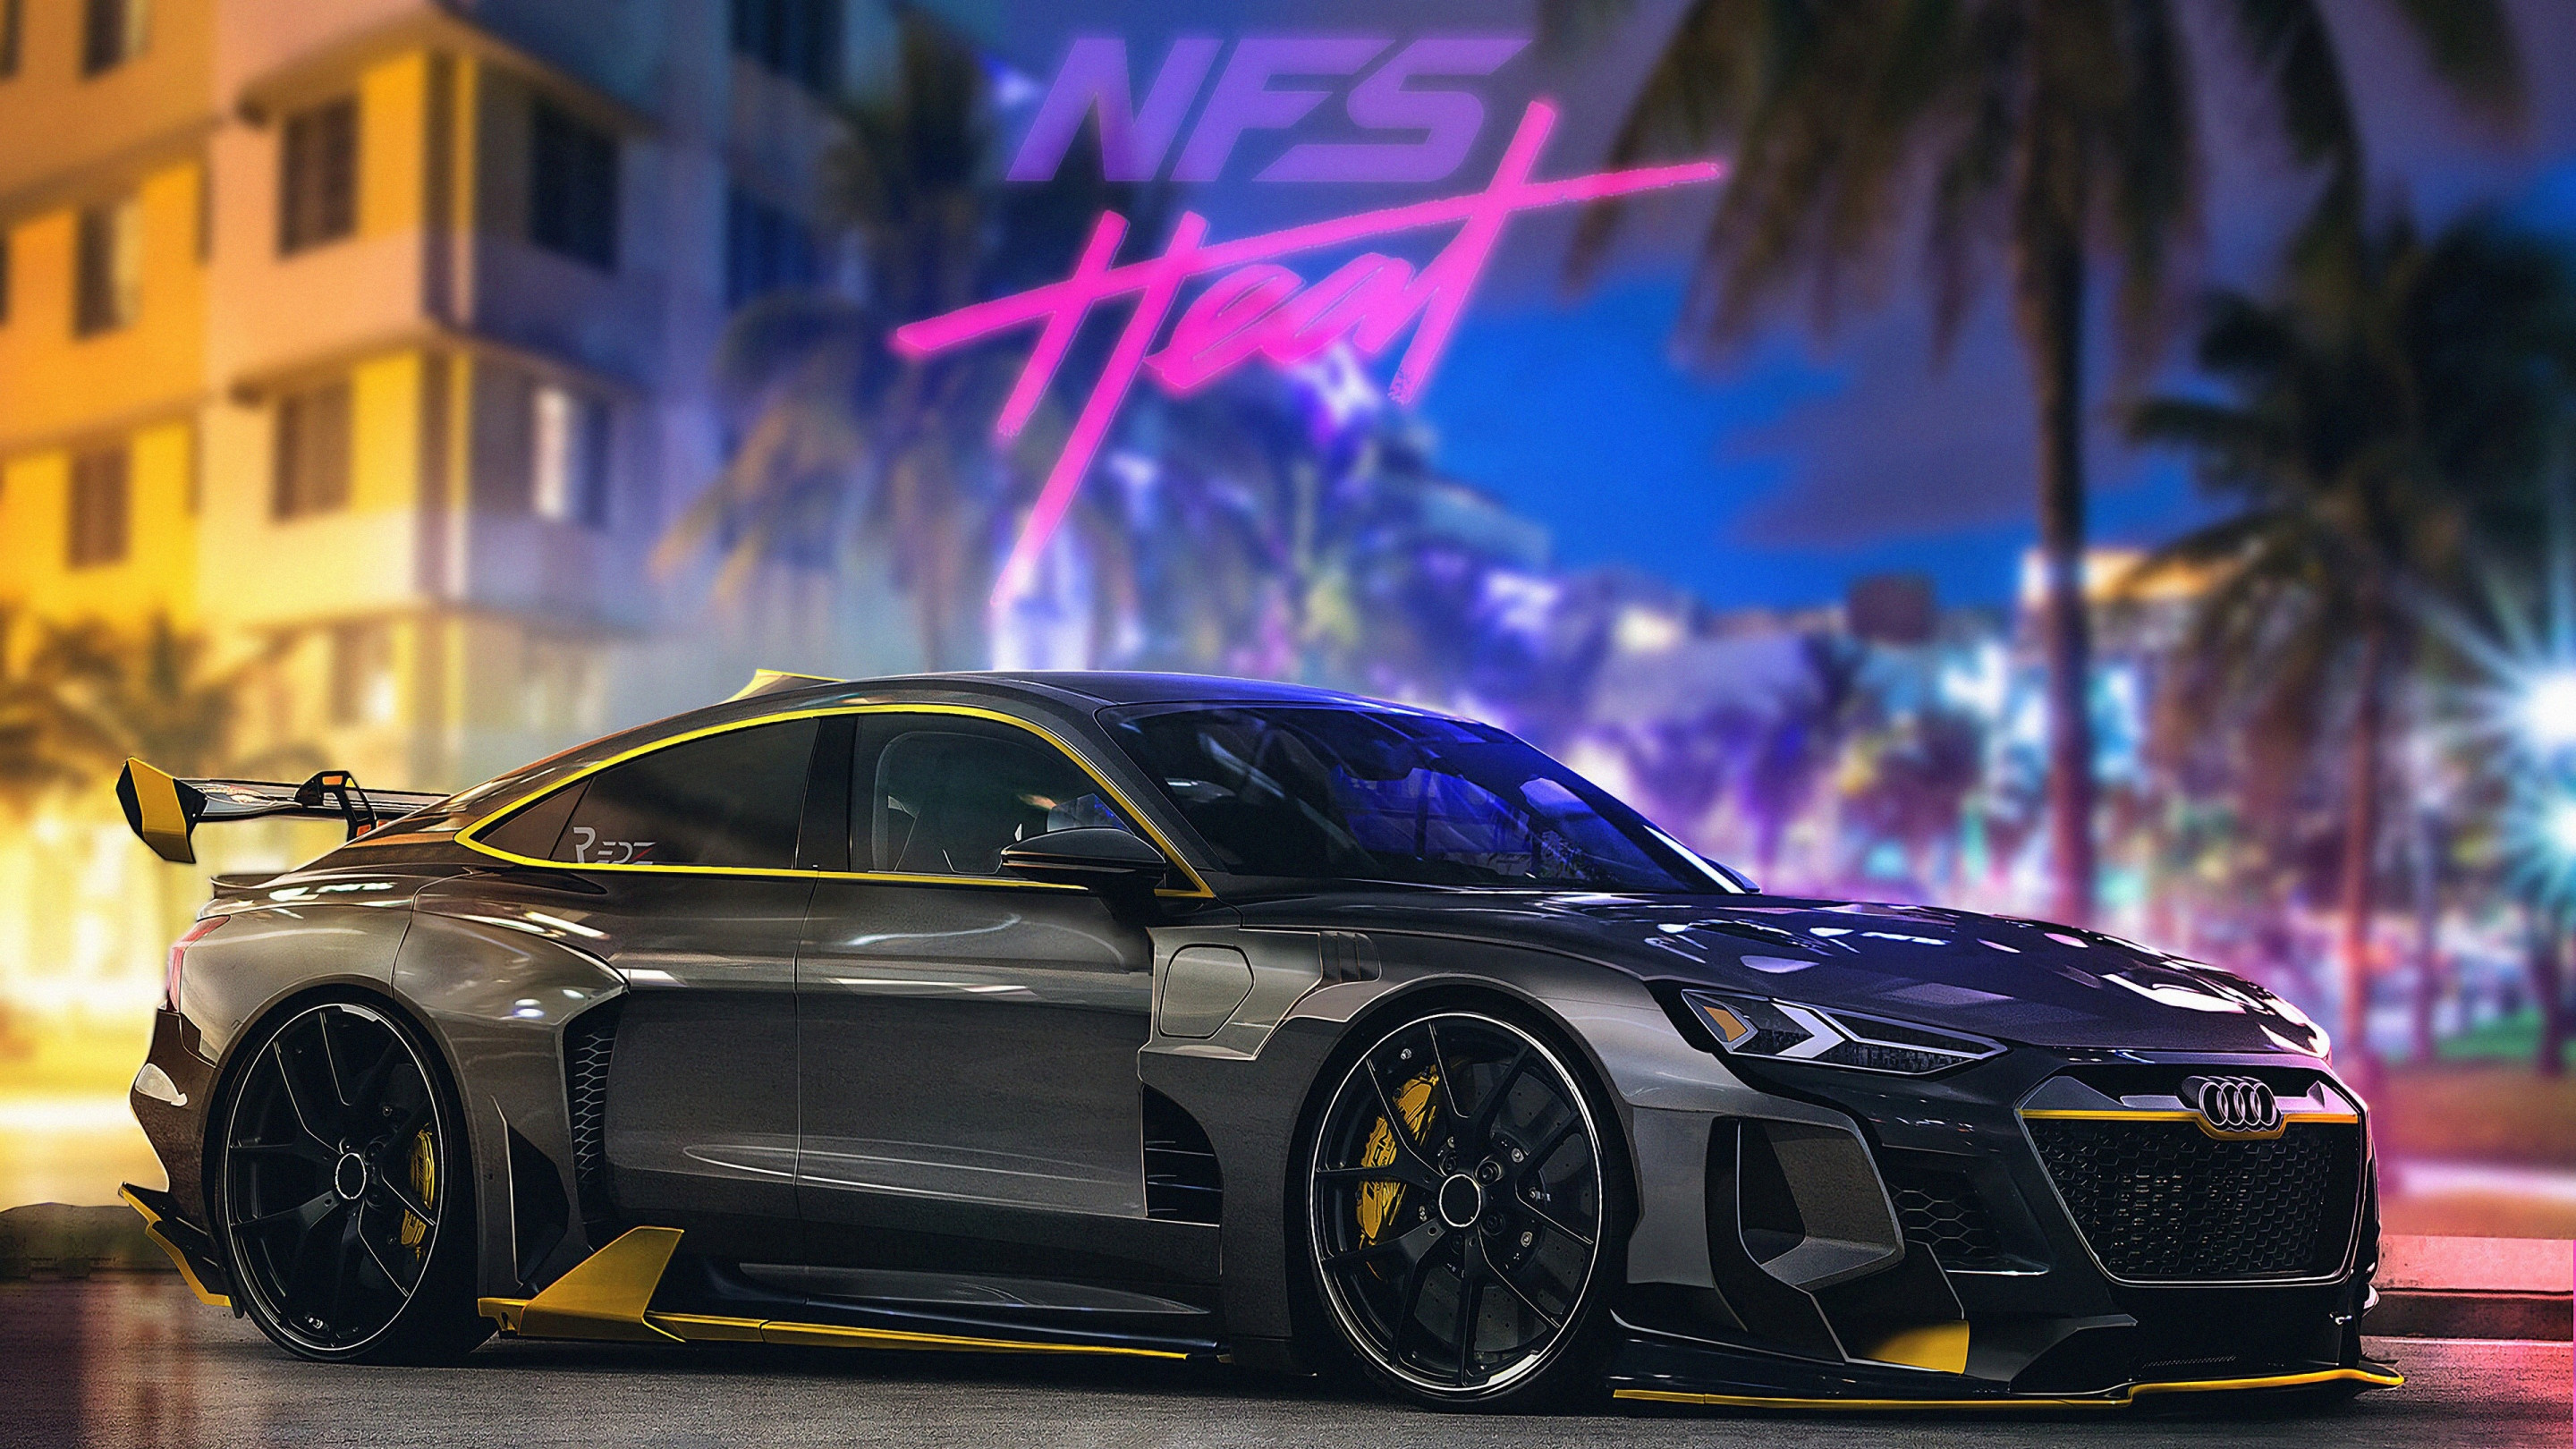 Audi in Need for Speed Heat wallpaper 2880x1620